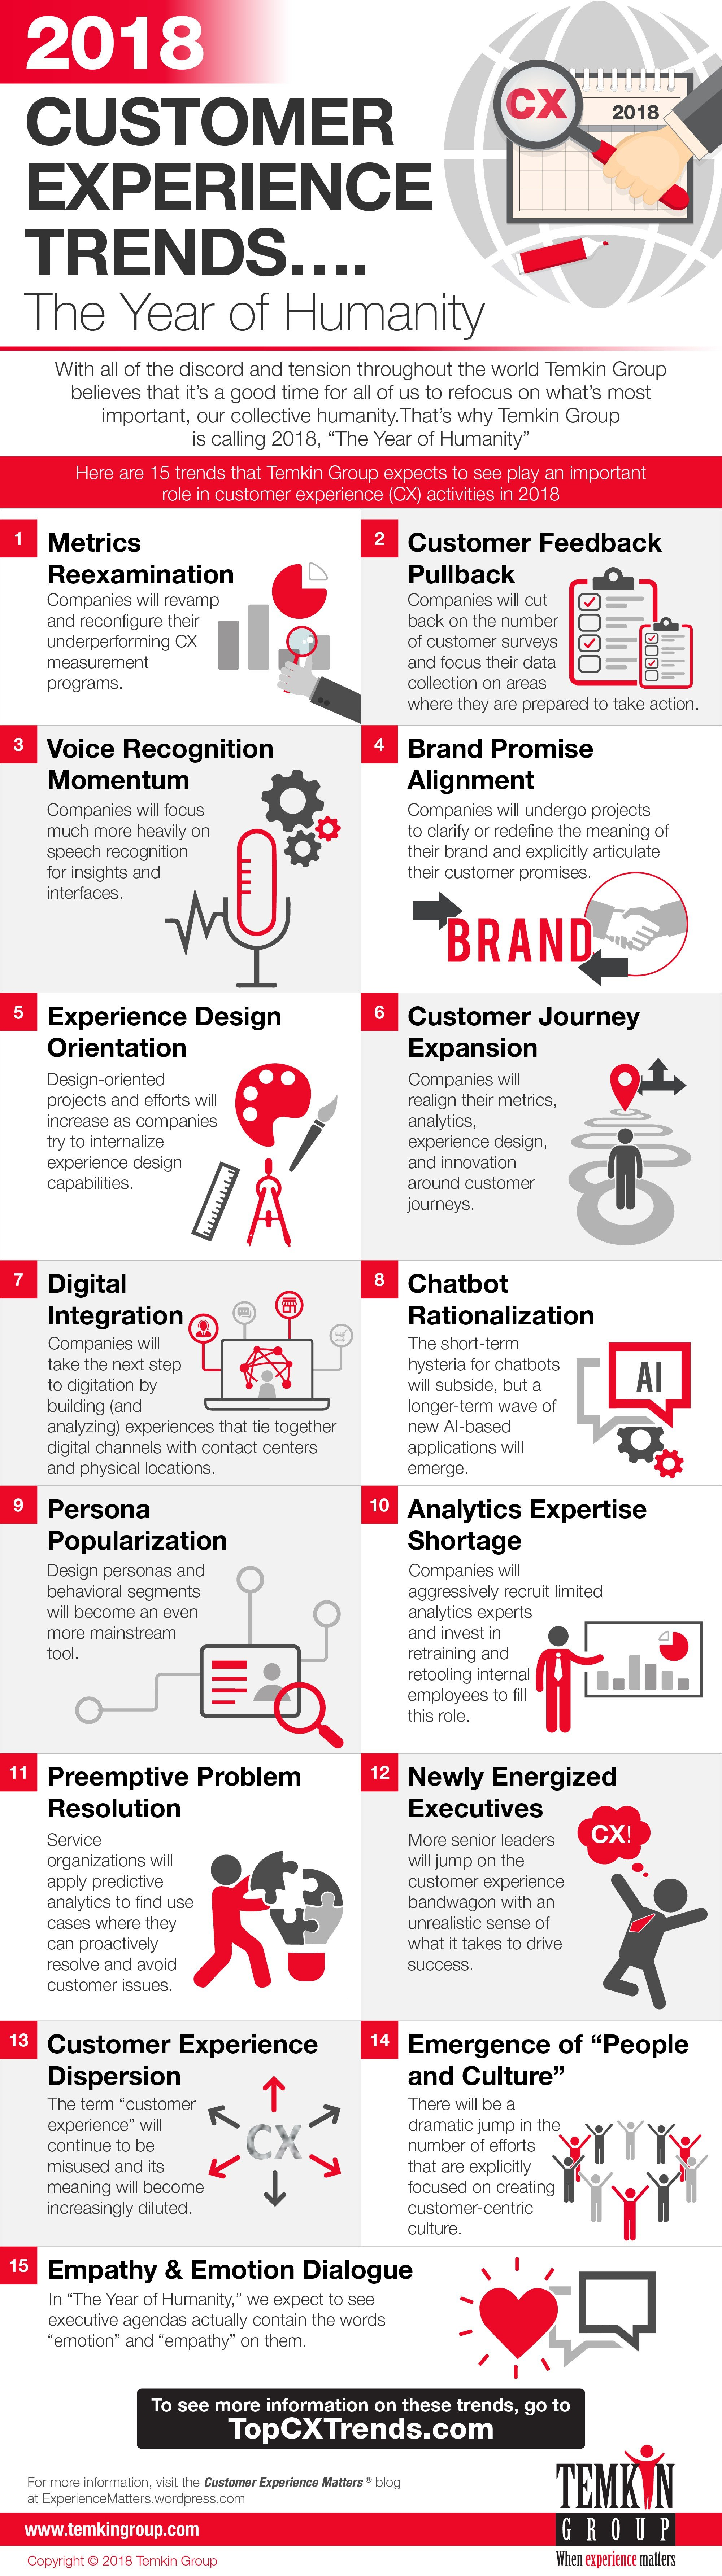 Customer Experience Trends Infographic